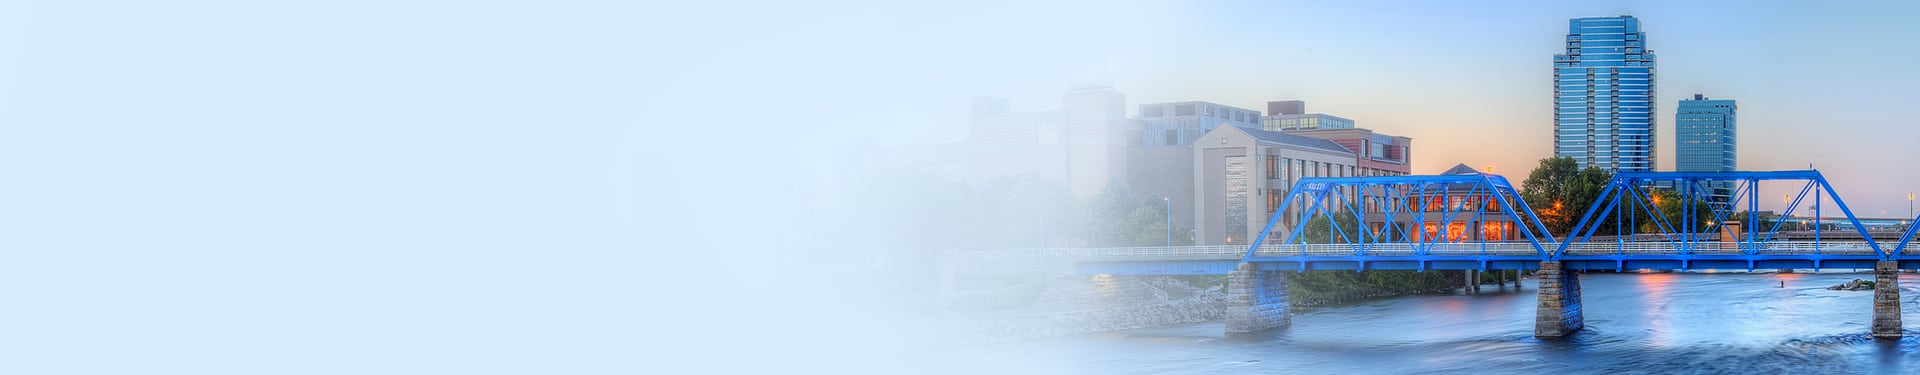 Business Leaders image, cityscape photo of grand rapids looking over blue bridge